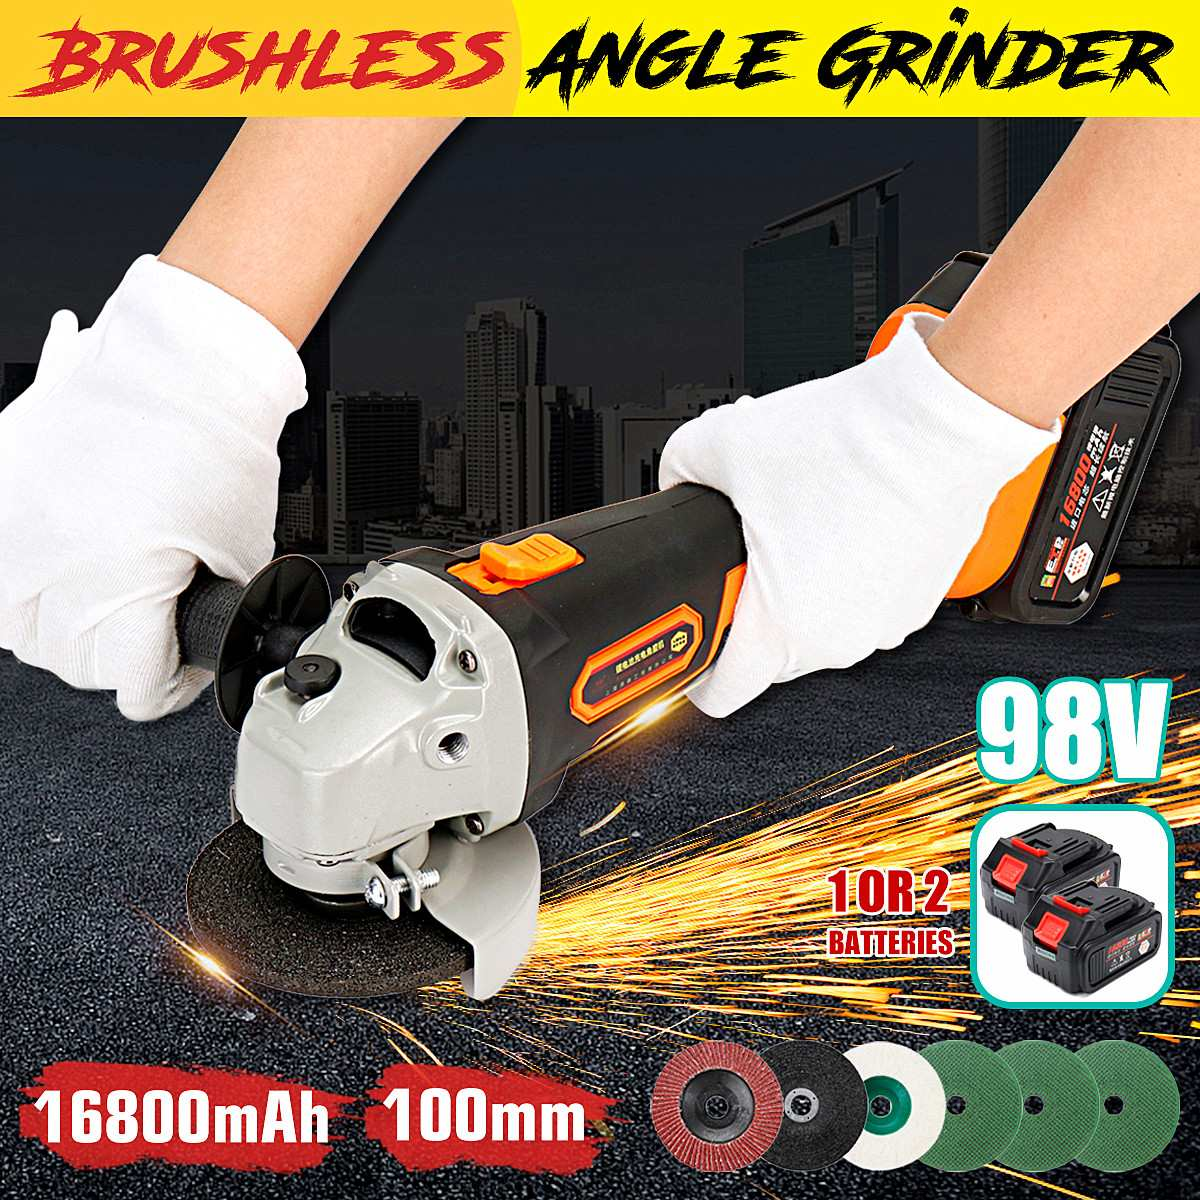 220V Rechargeable Electric Angle Grinder Brushless Motor Wood Metal Cutting Grinding Machine Saw Power Tools 12800mAh Li Battery